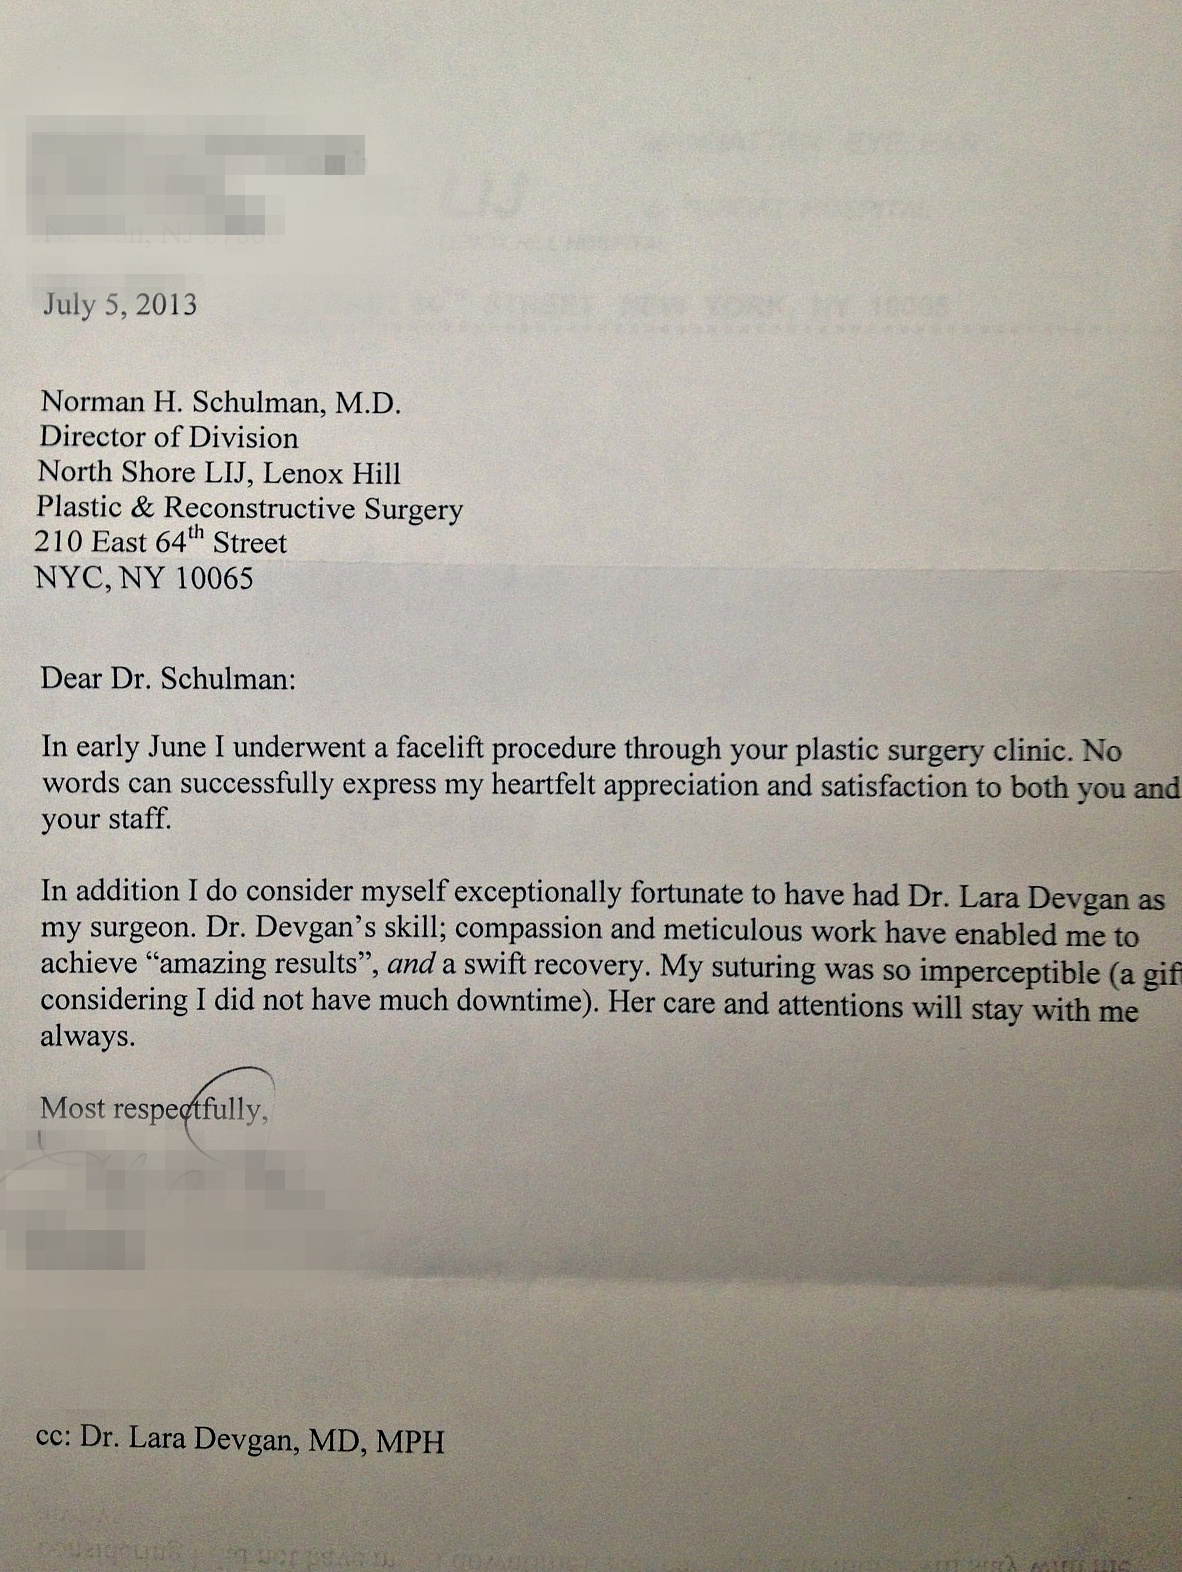 Letter from a facelift patient